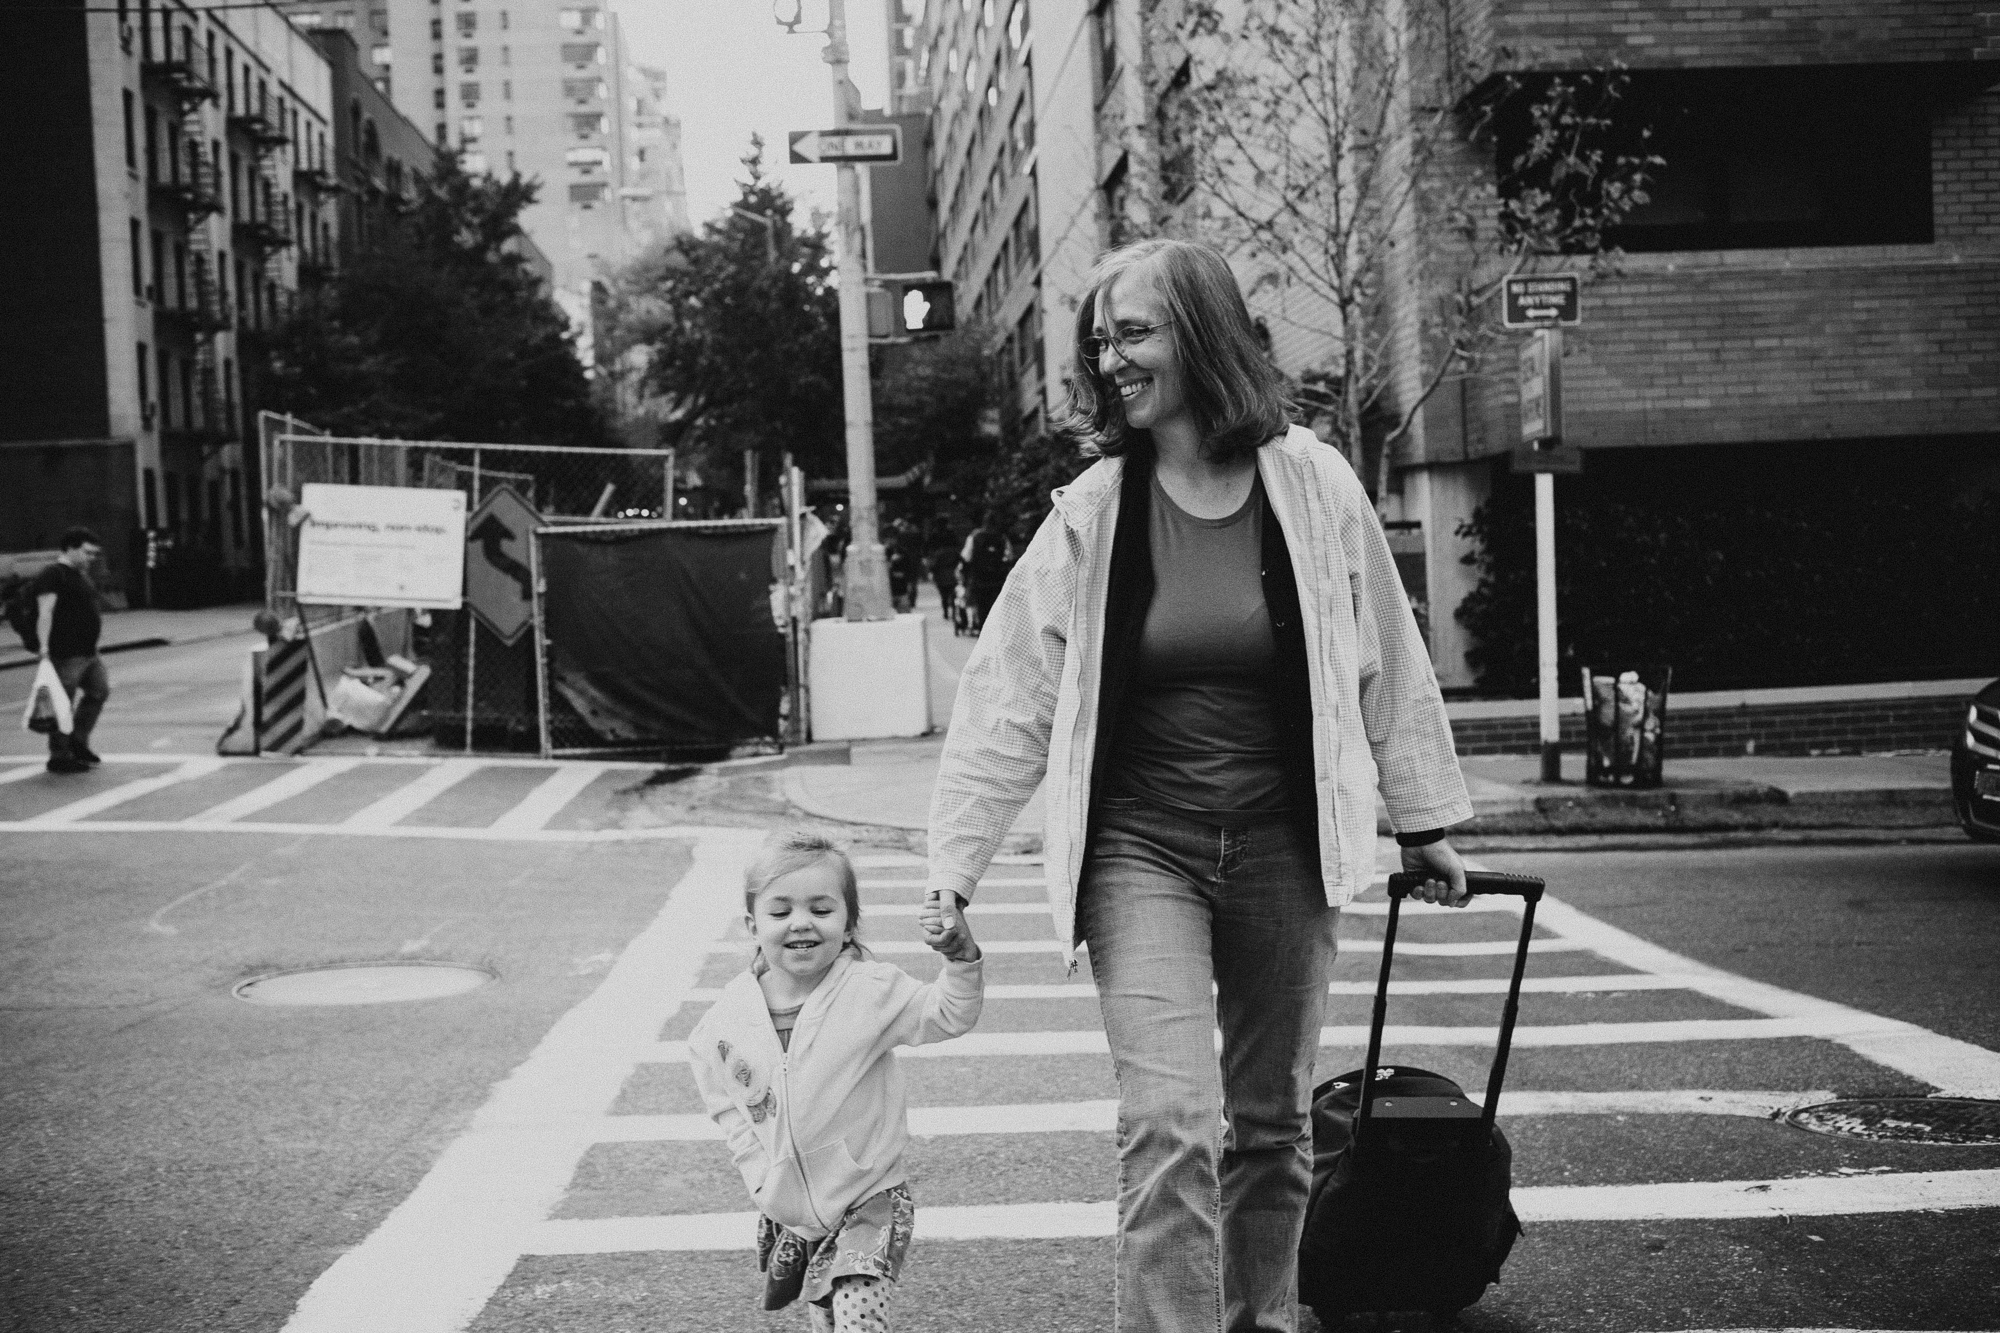 My niece Ava and Mom in NYC, 2015